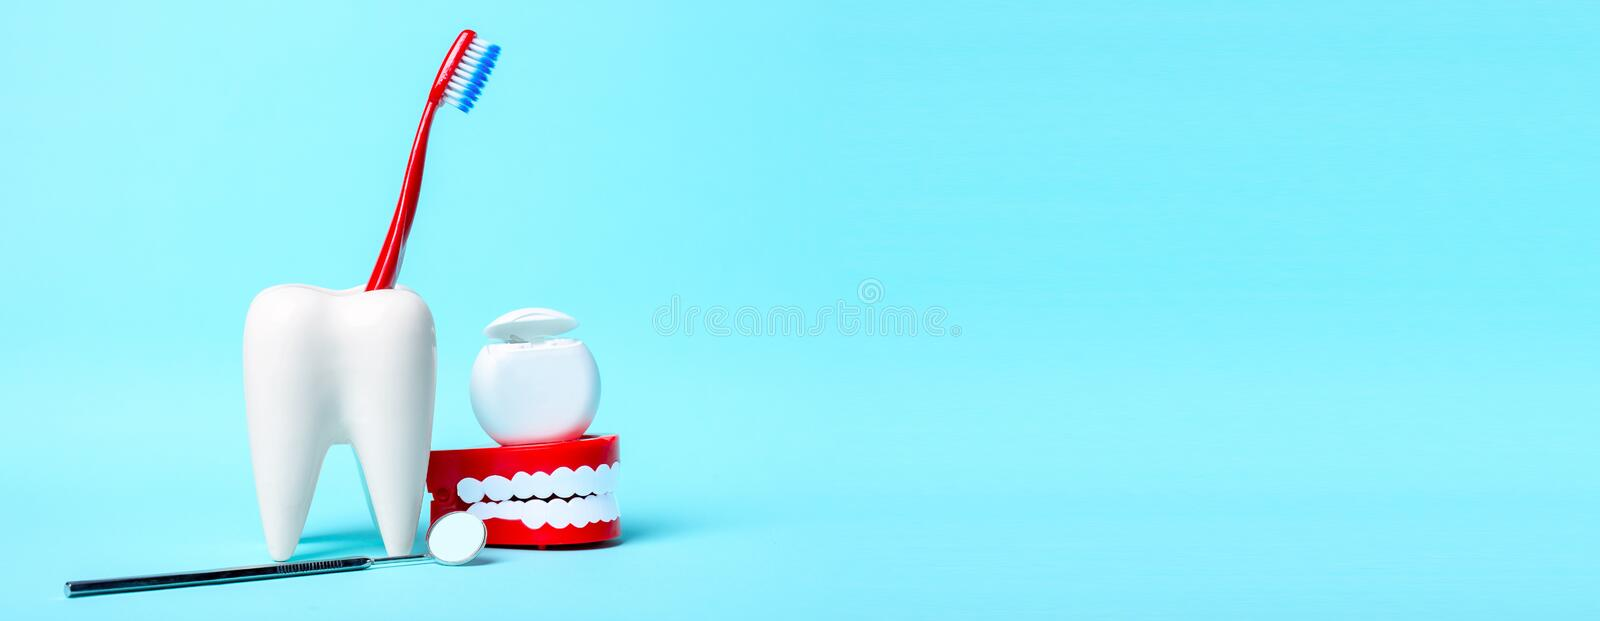 Dental health and teethcare concept. Dental mirror, human jaw model and dental floss near white tooth model with toothbrush on. Light blue background. Free royalty free stock images